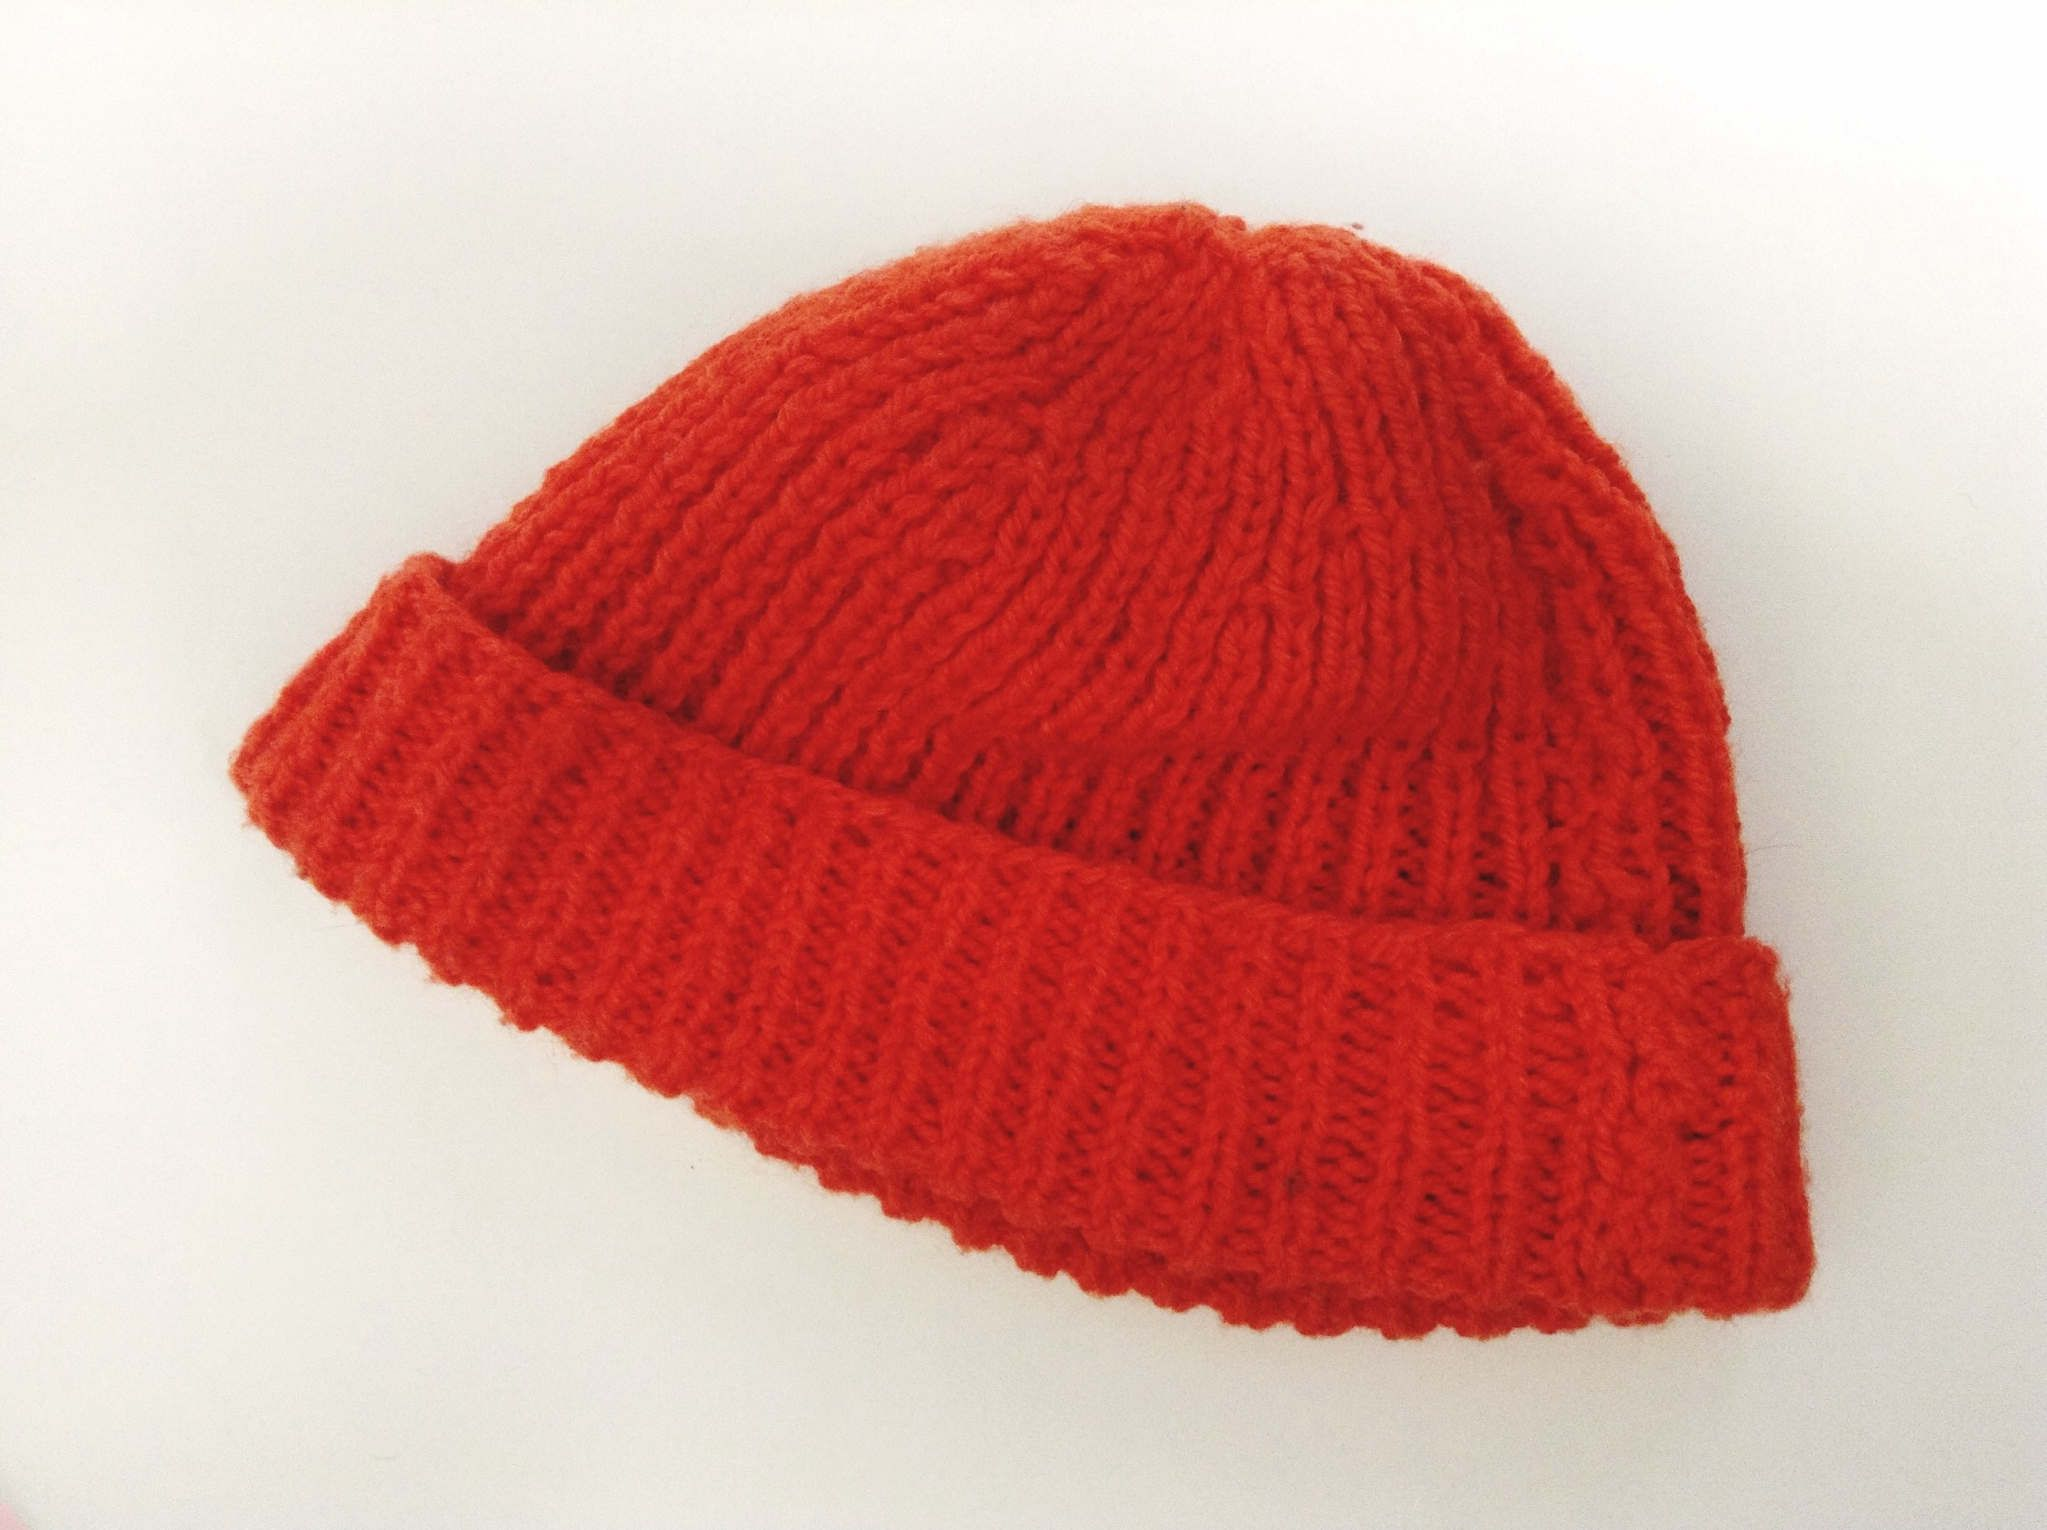 Knitting A Hat Flat : Free knitting pattern for a ribbed hat knit flat